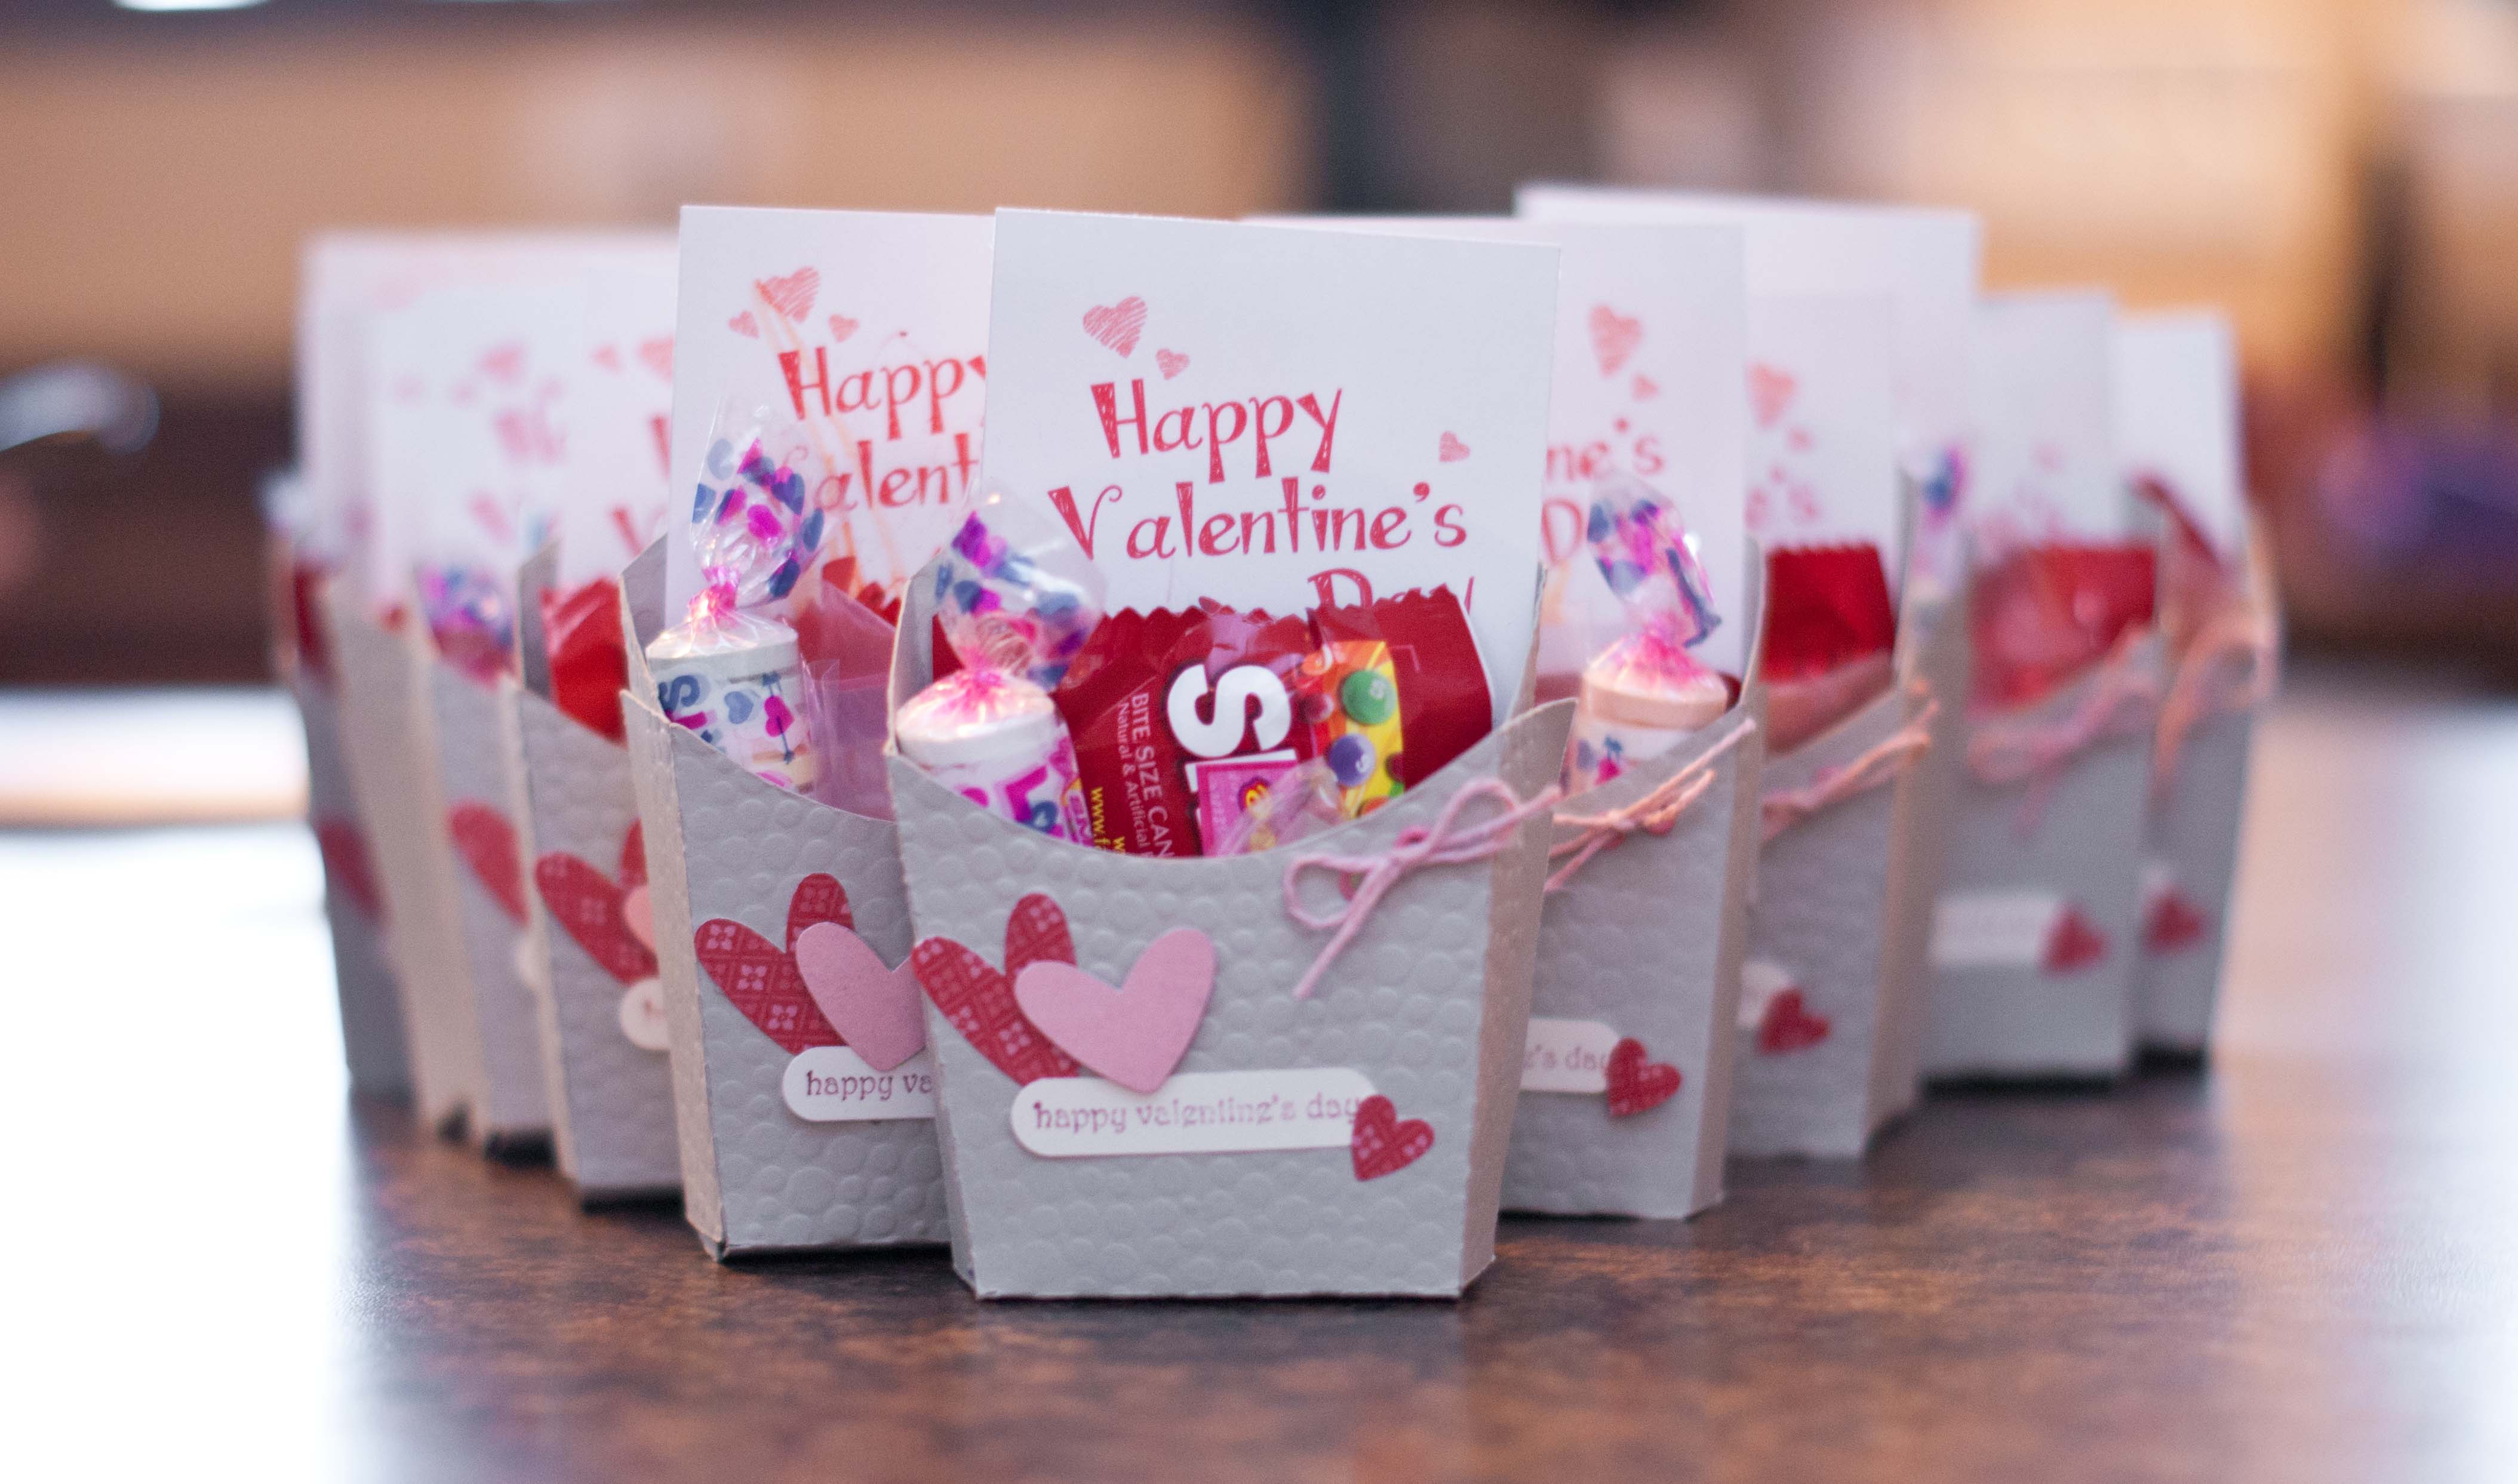 sony dsc - Stampin Up Valentine Cards